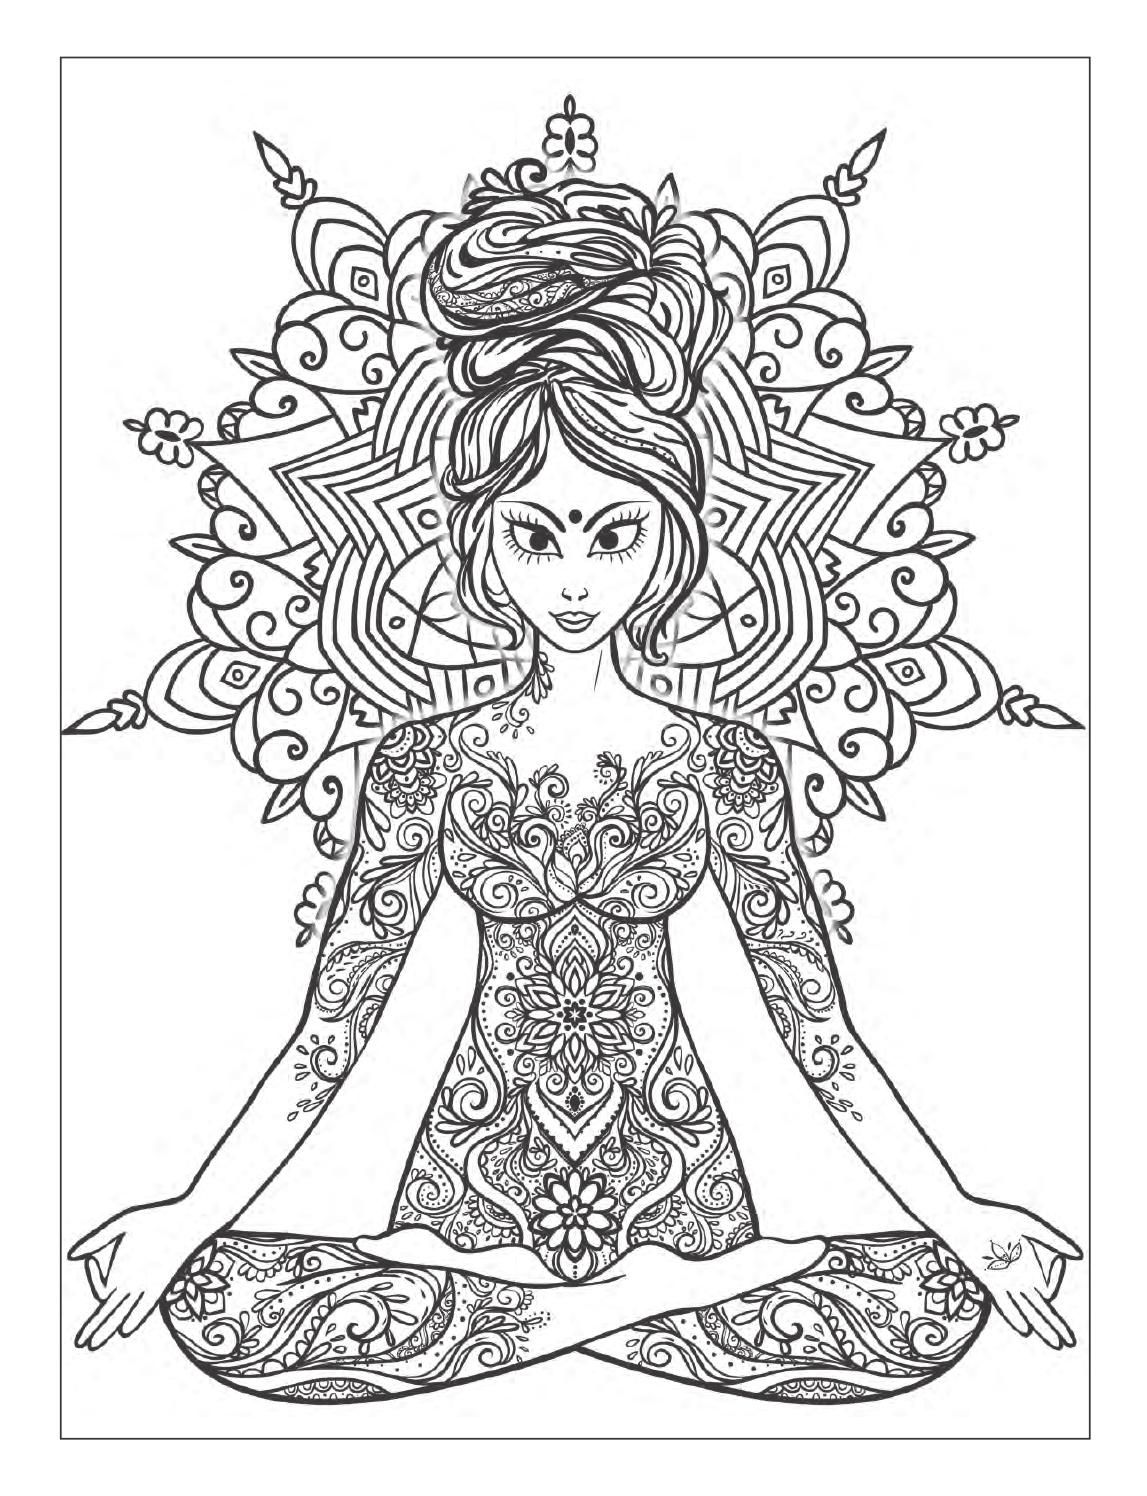 free meditation coloring pages - photo#41